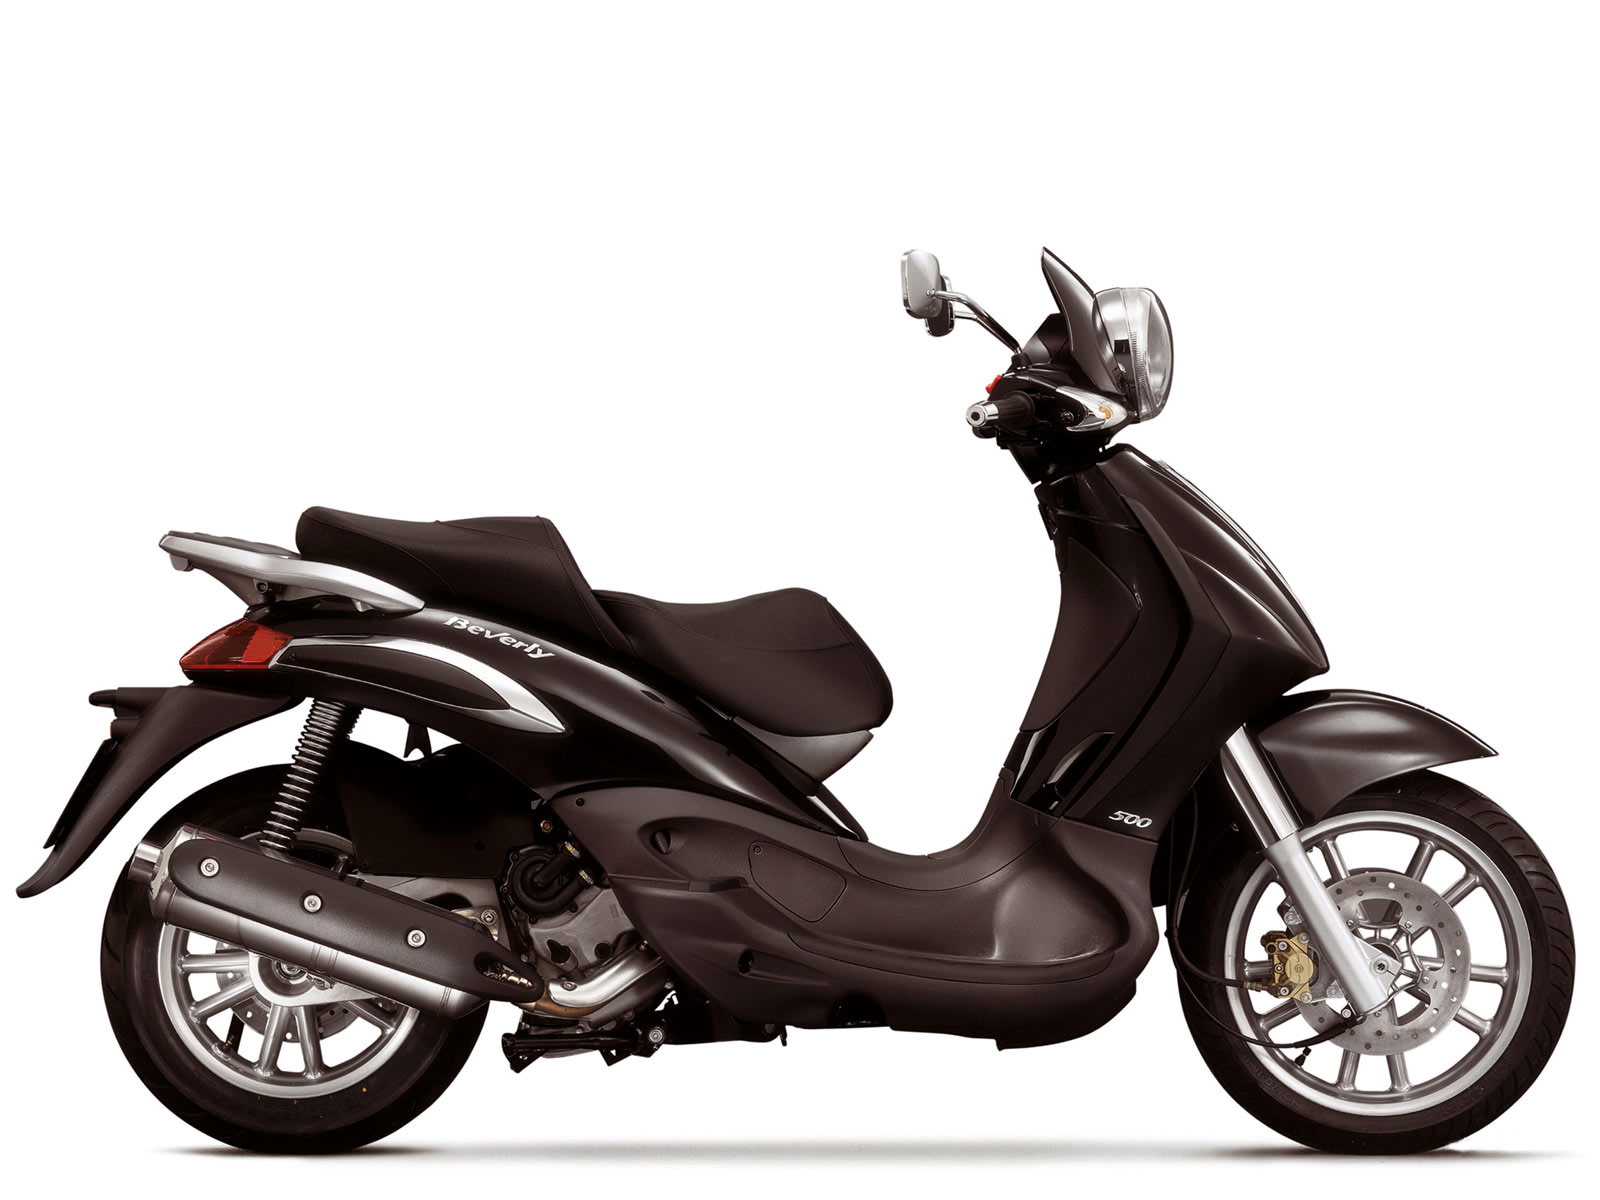 PIAGGIO BEVERLY 200 brown